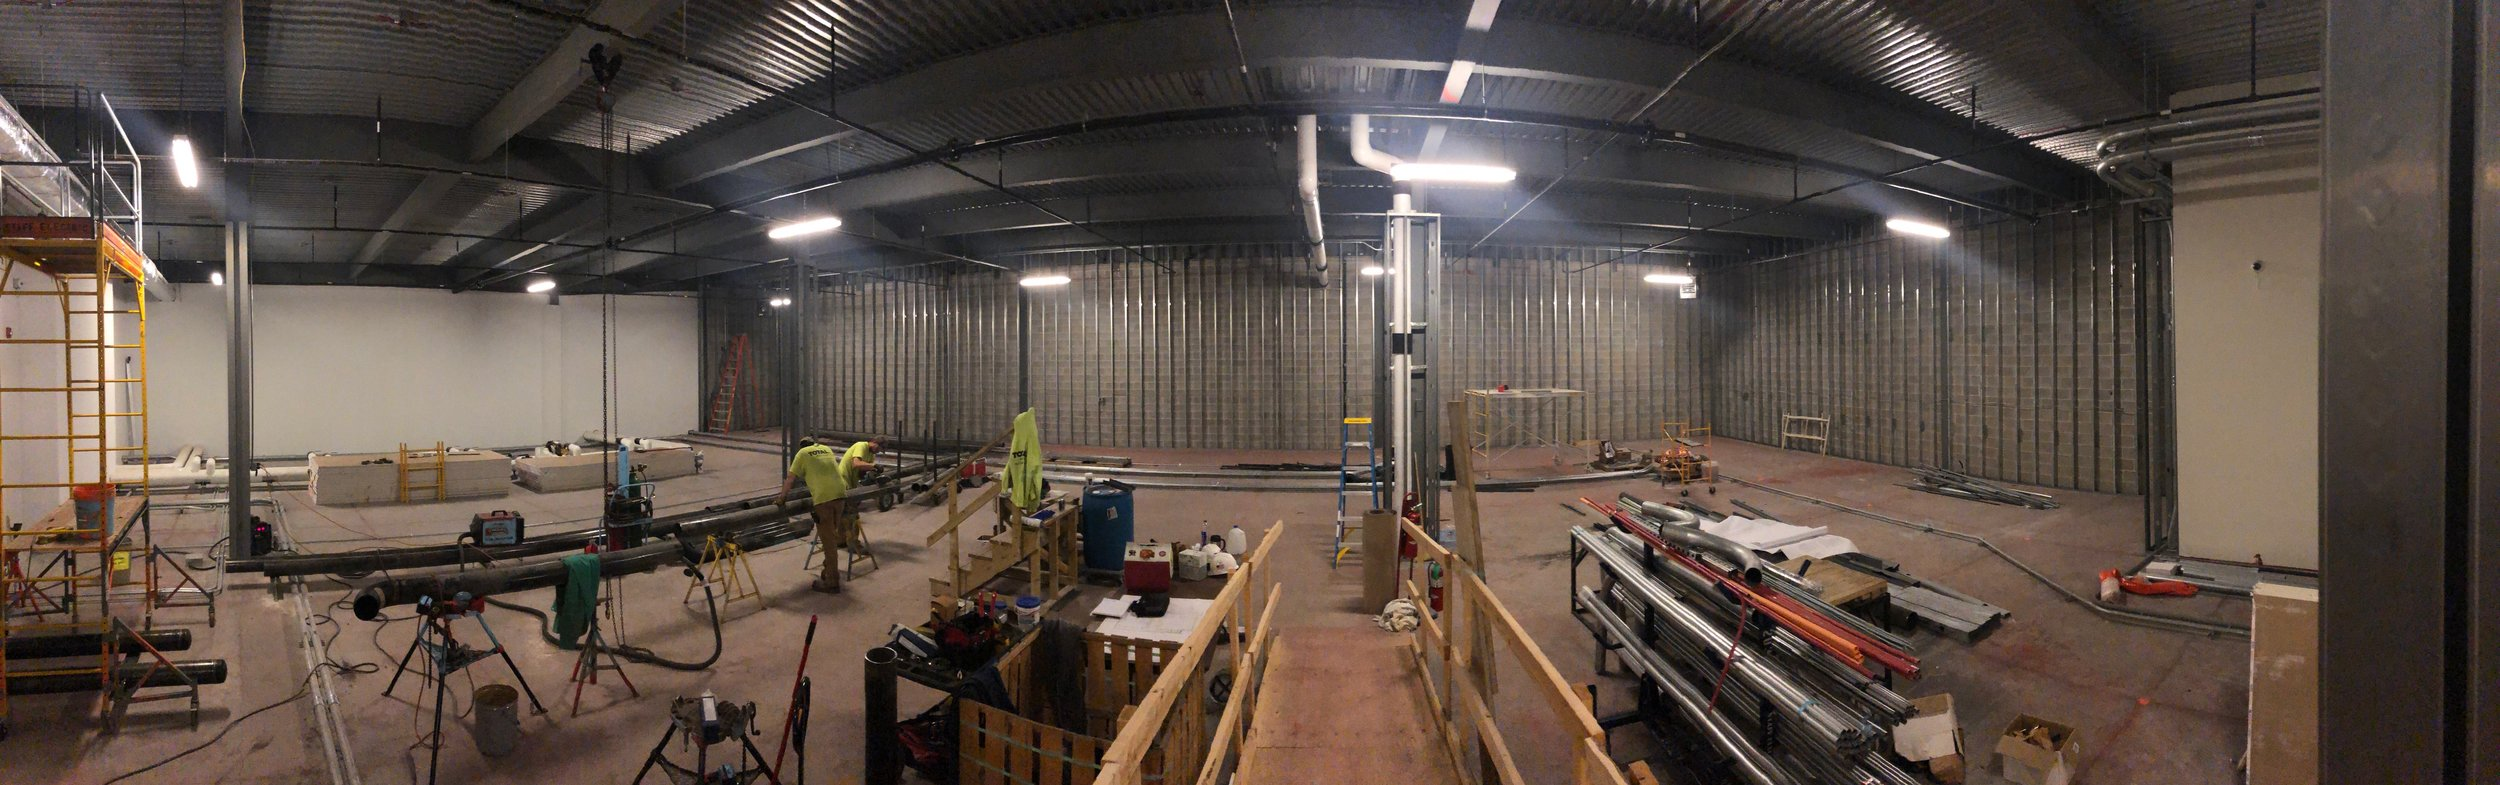 Week of May 6th - May 10th, 2019   Construction is underway. East walls have studs and electrical runs ready for some drywall.